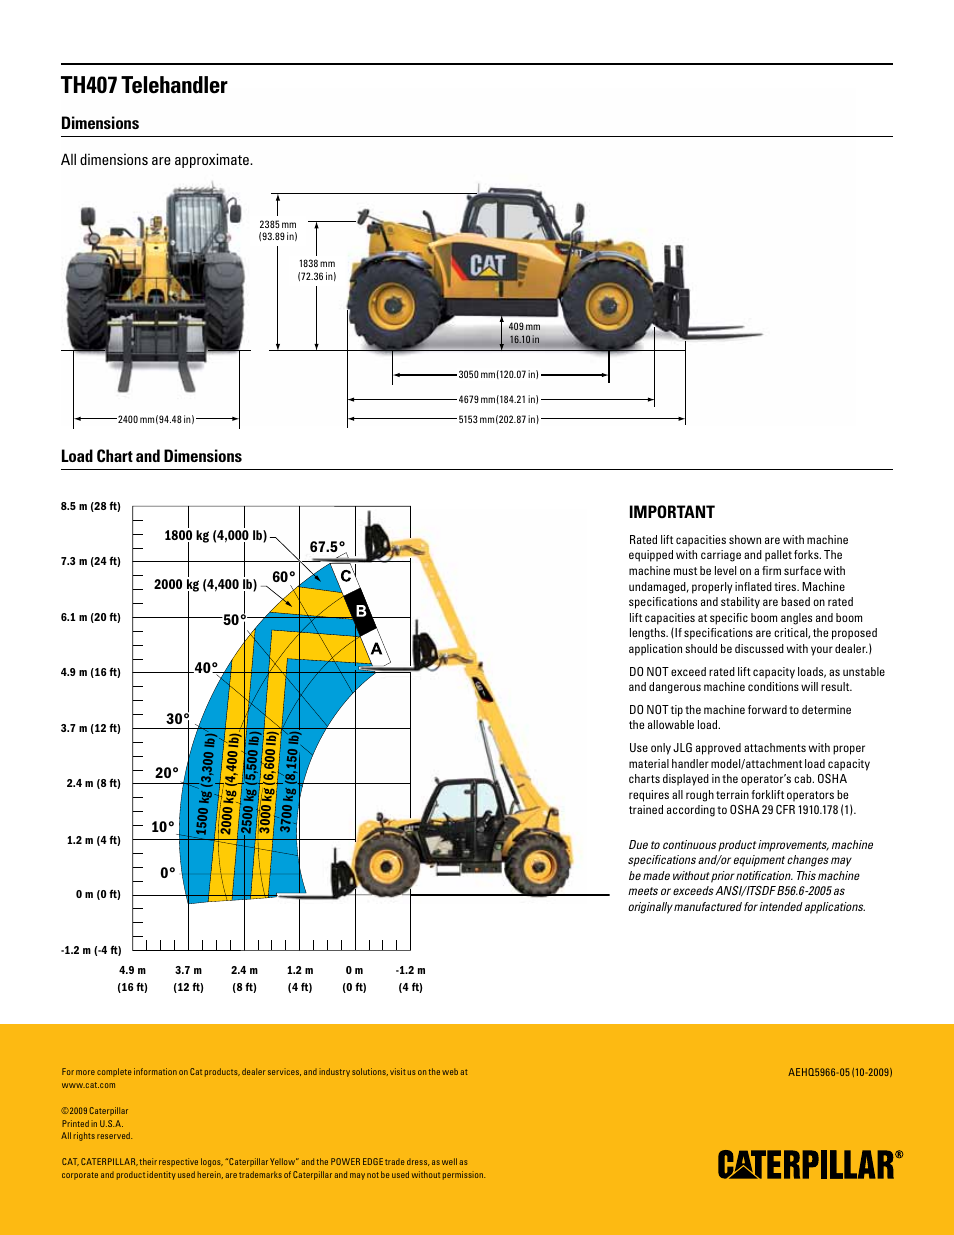 th407 telehandler  dimensions  load chart and dimensions